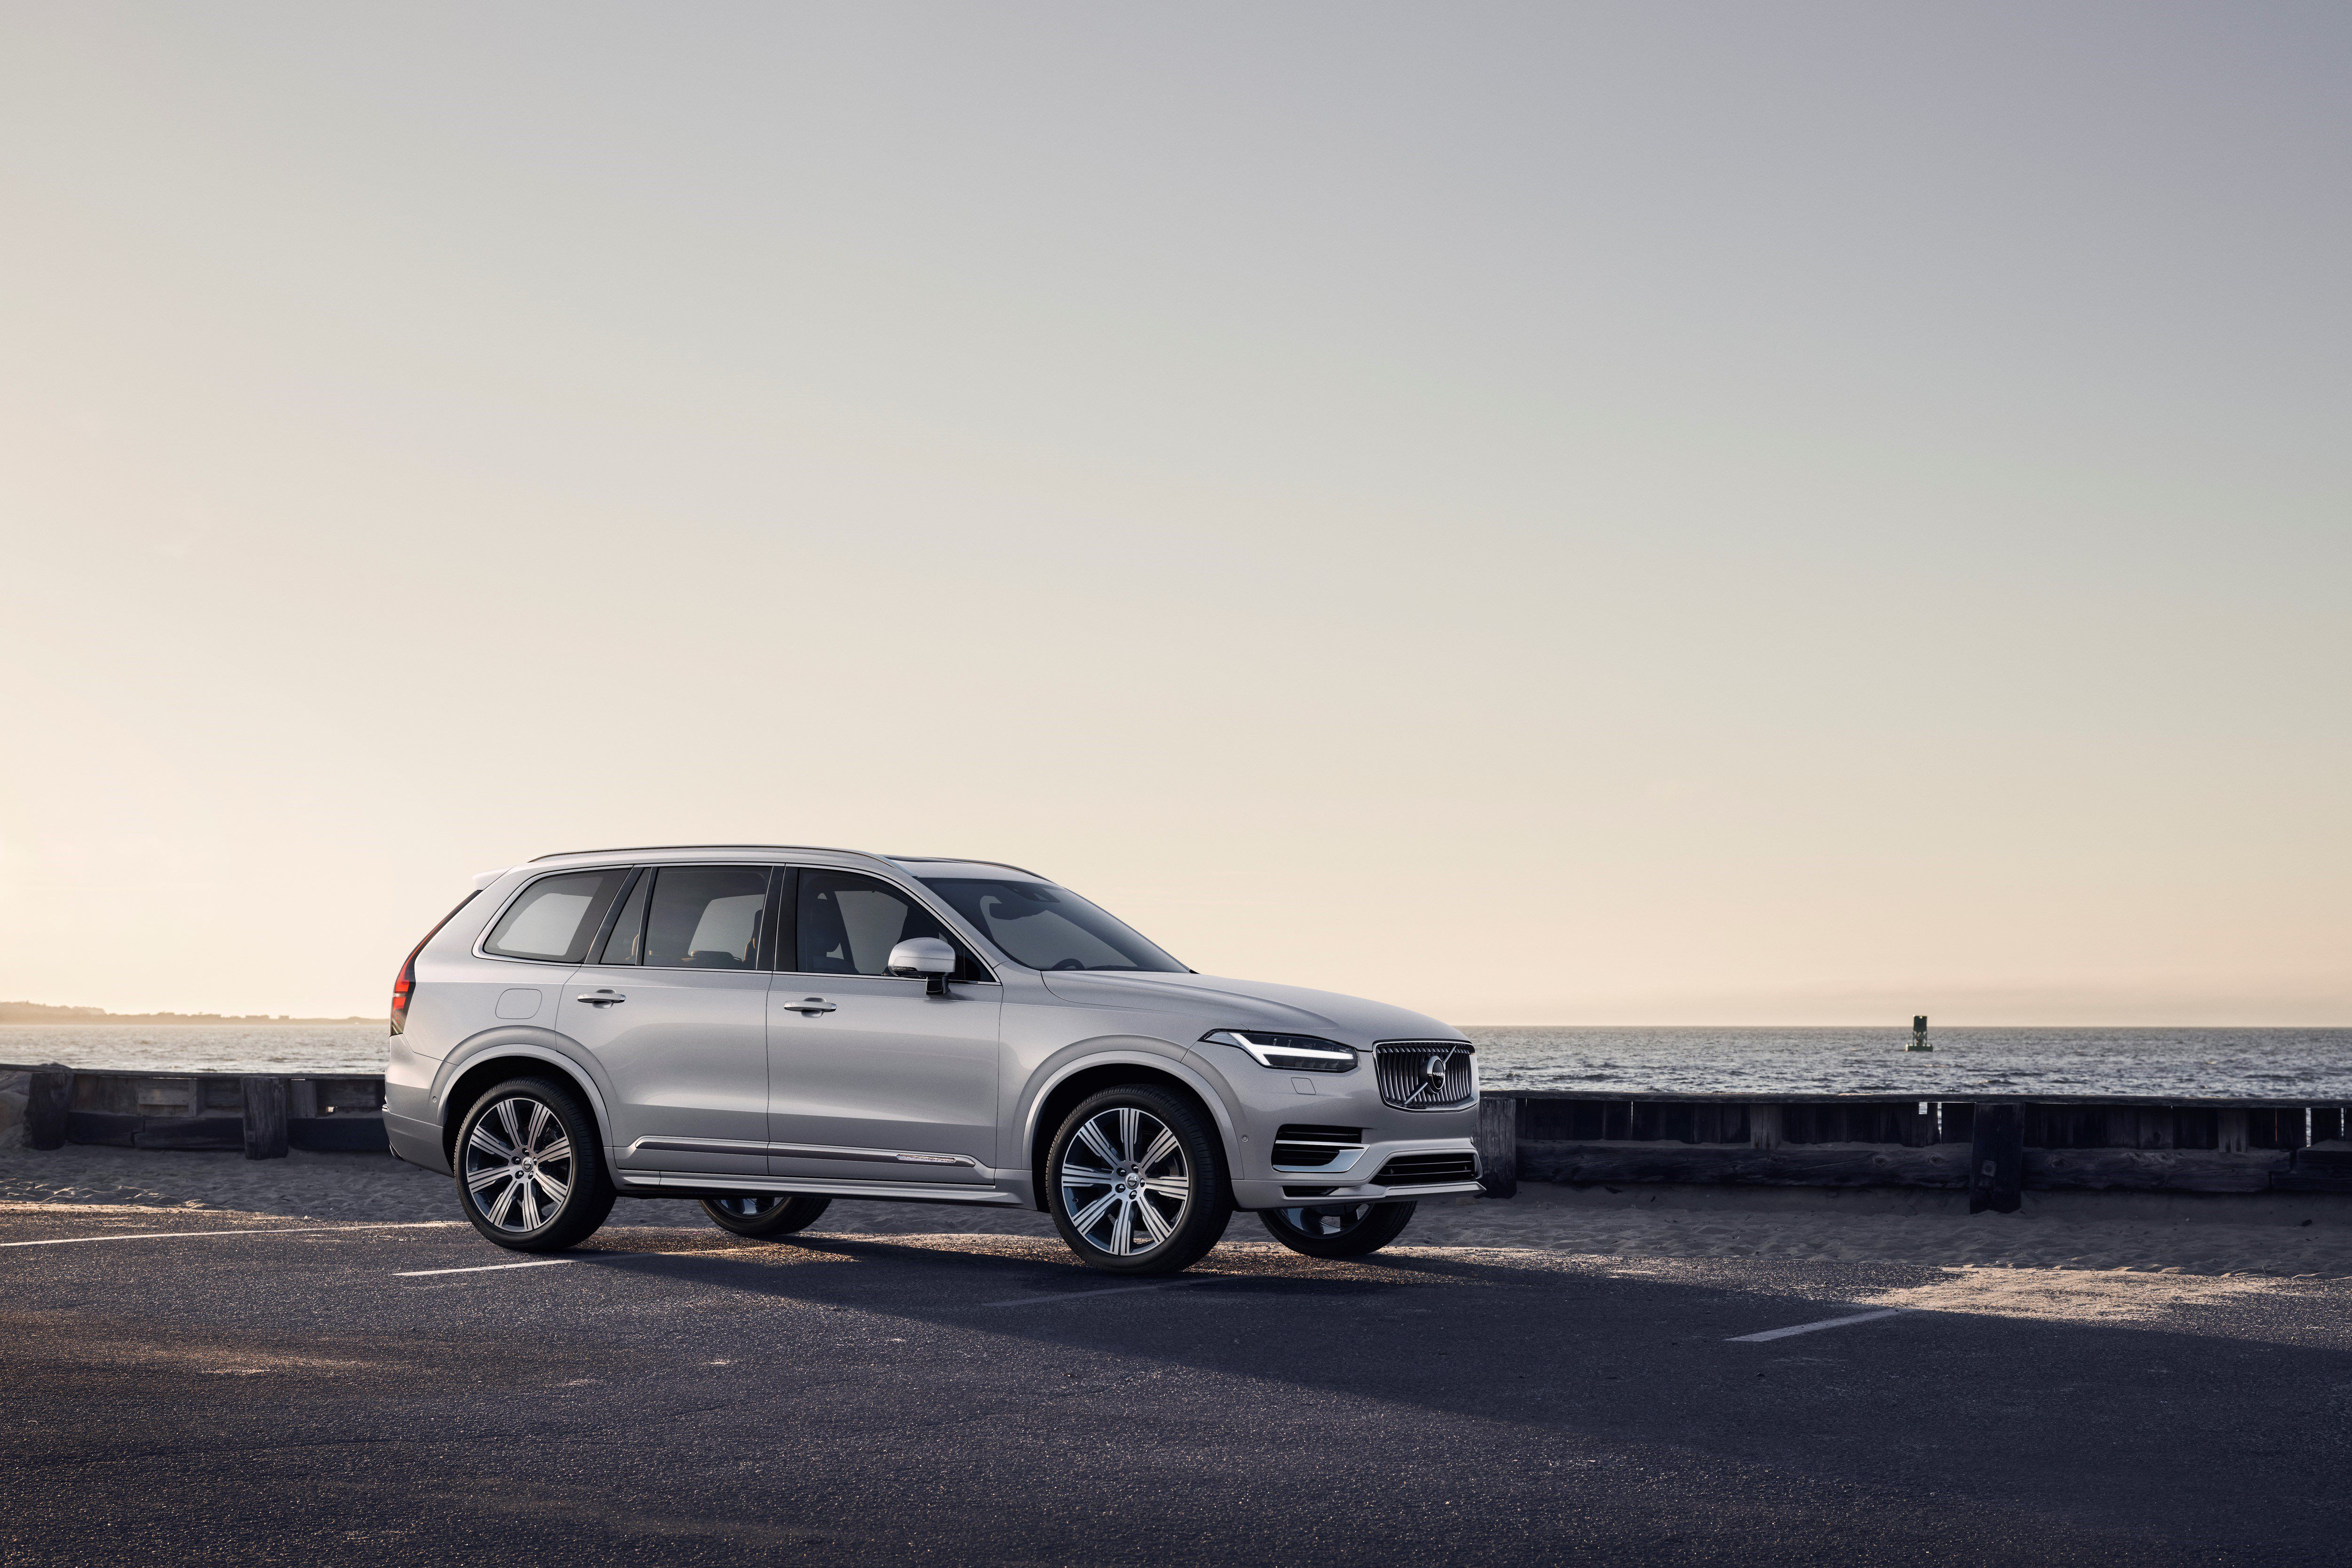 32 All New 2020 Volvo XC90 Wallpaper